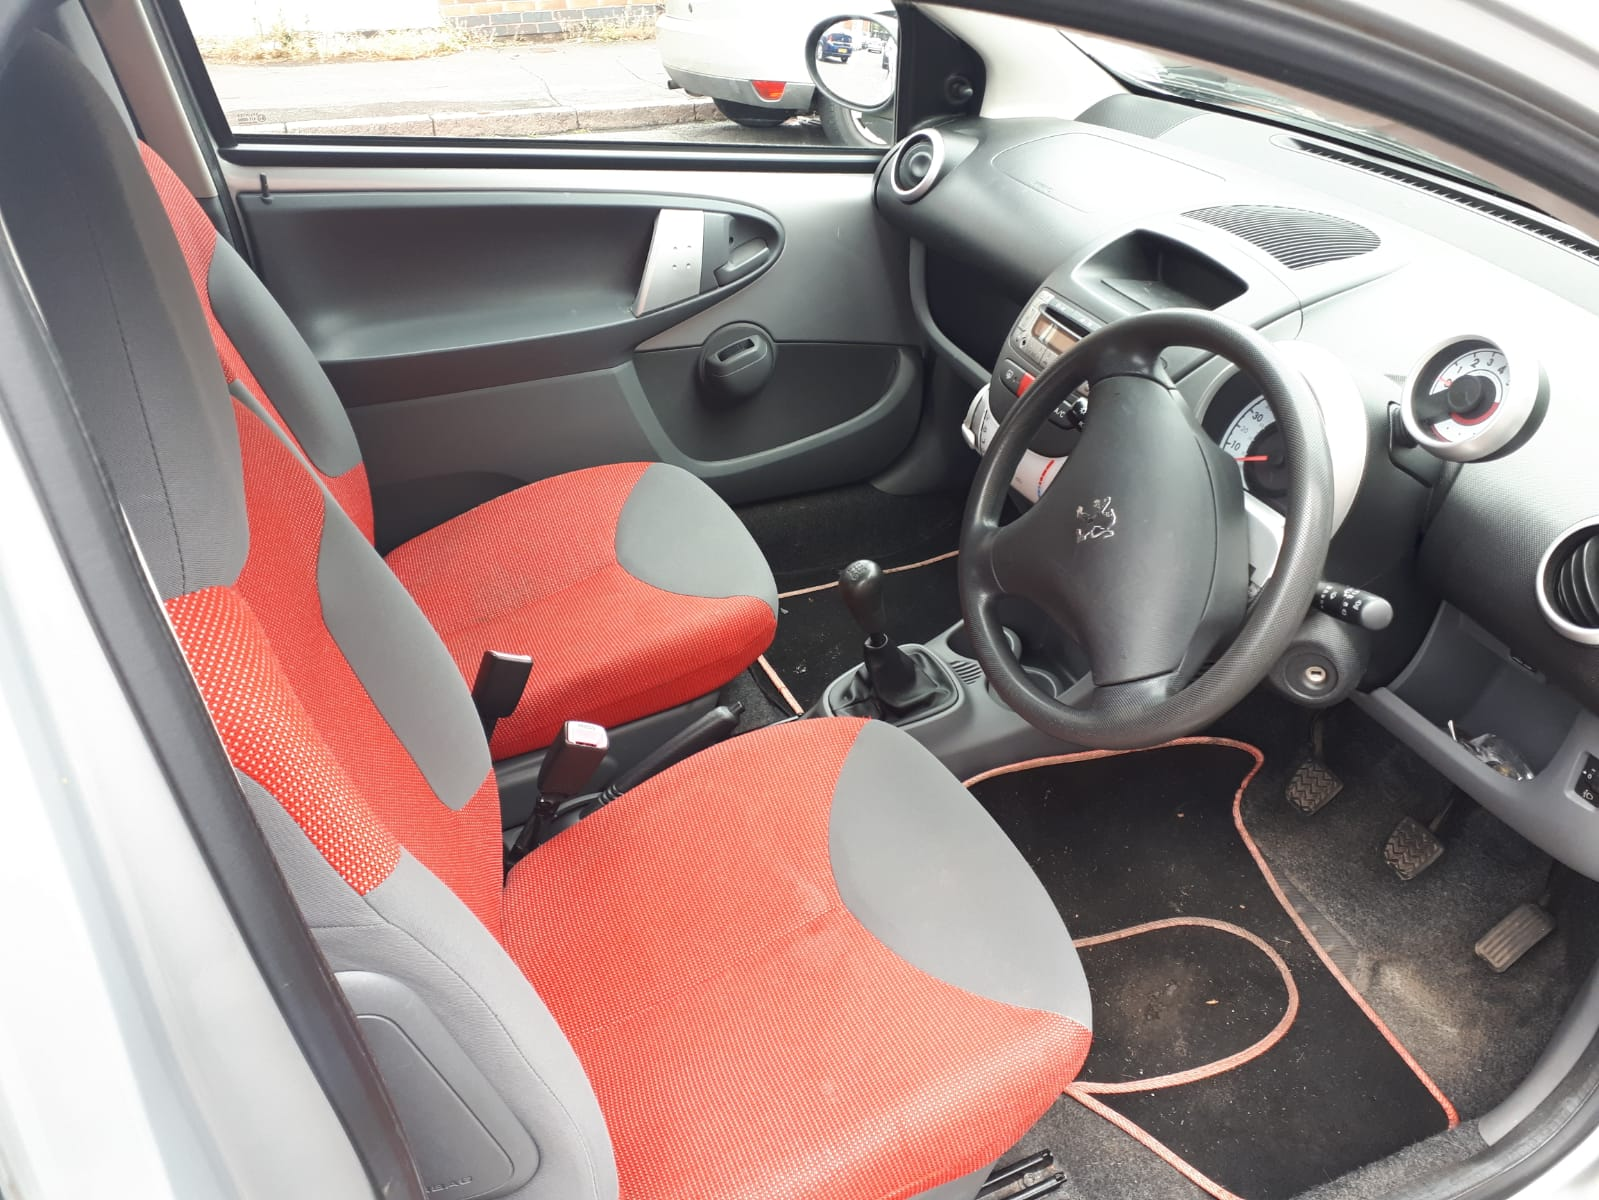 Peugeot Urban - used car for sale - interior